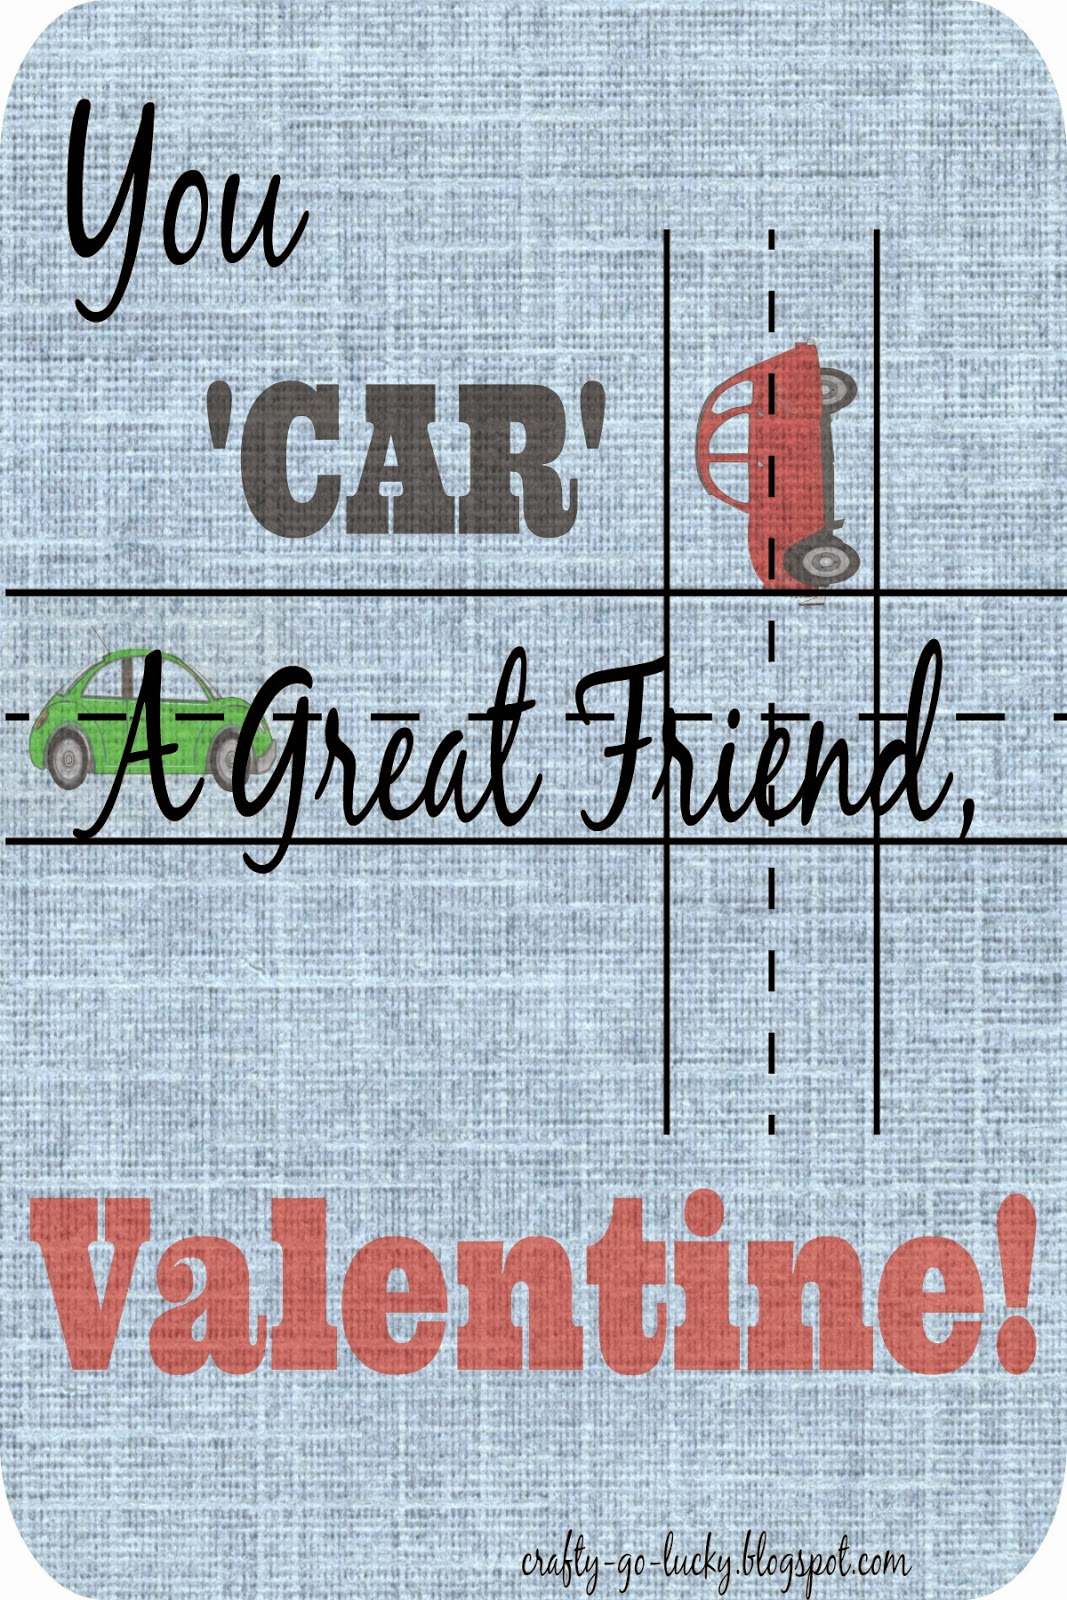 Free Valentine Printables! (3x5 & 4x6) You CAR a Great Friend, Valentine!